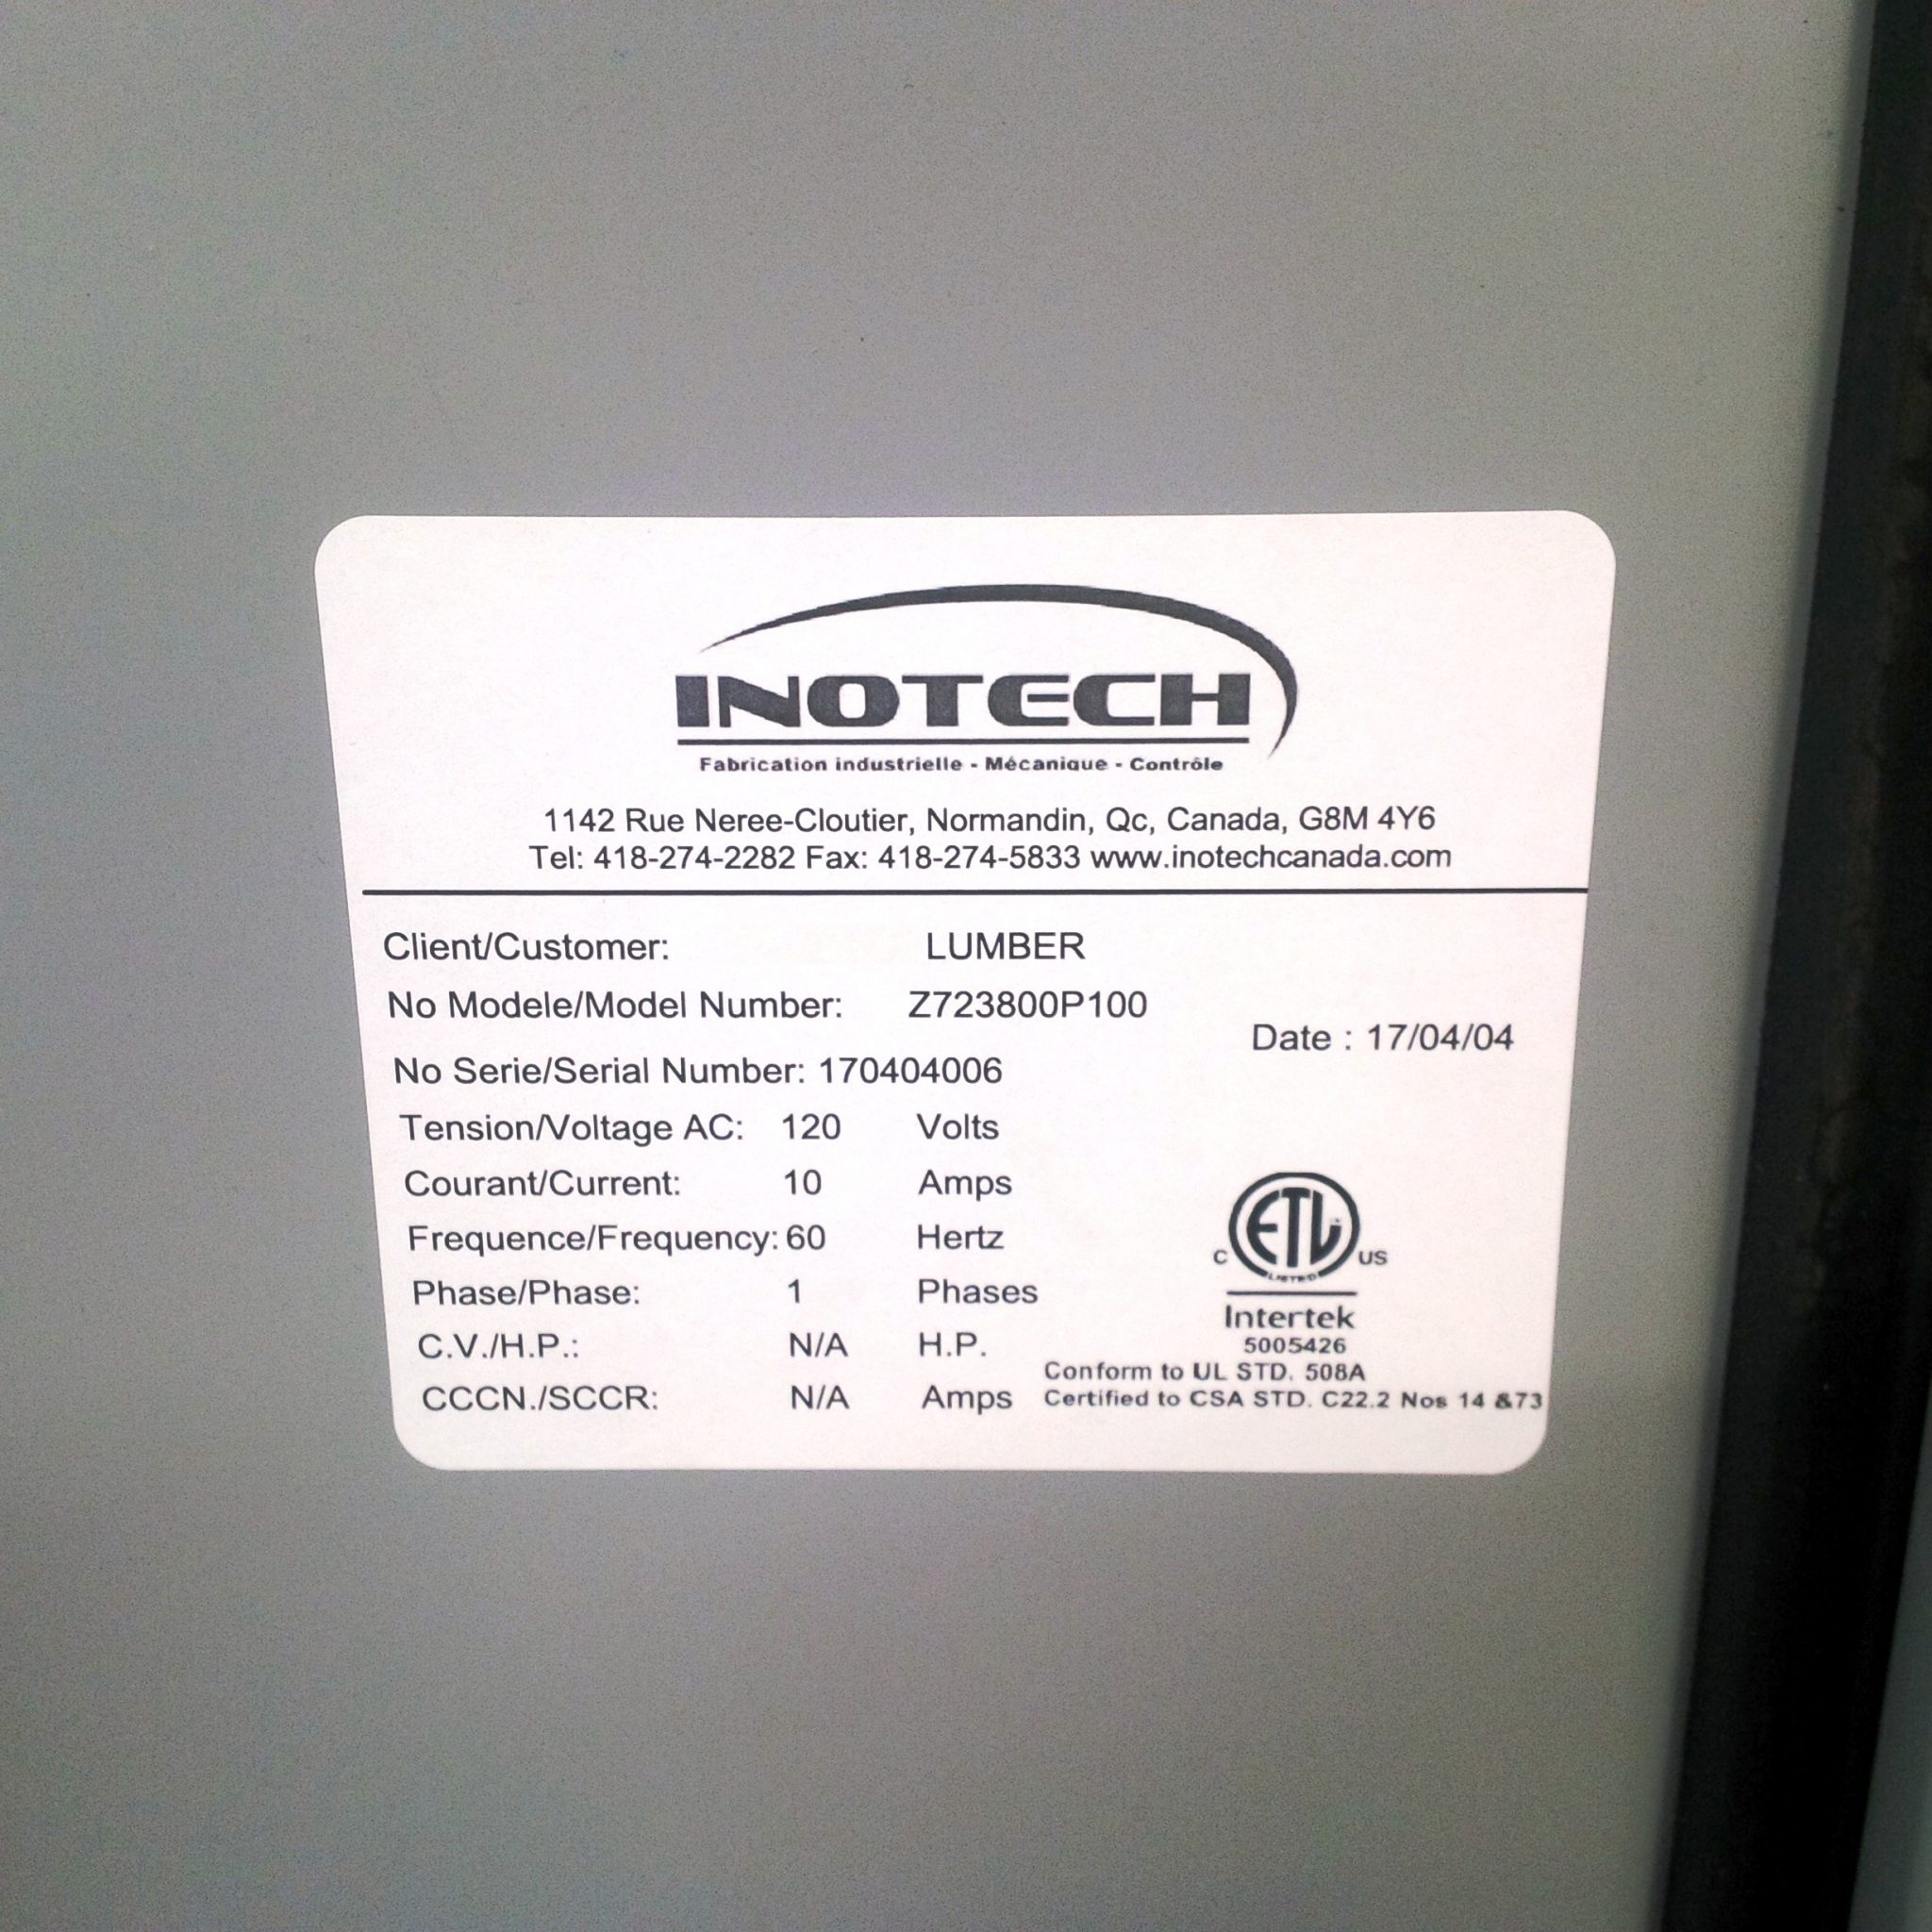 Control panels manufacturing - Inotech Canada inc